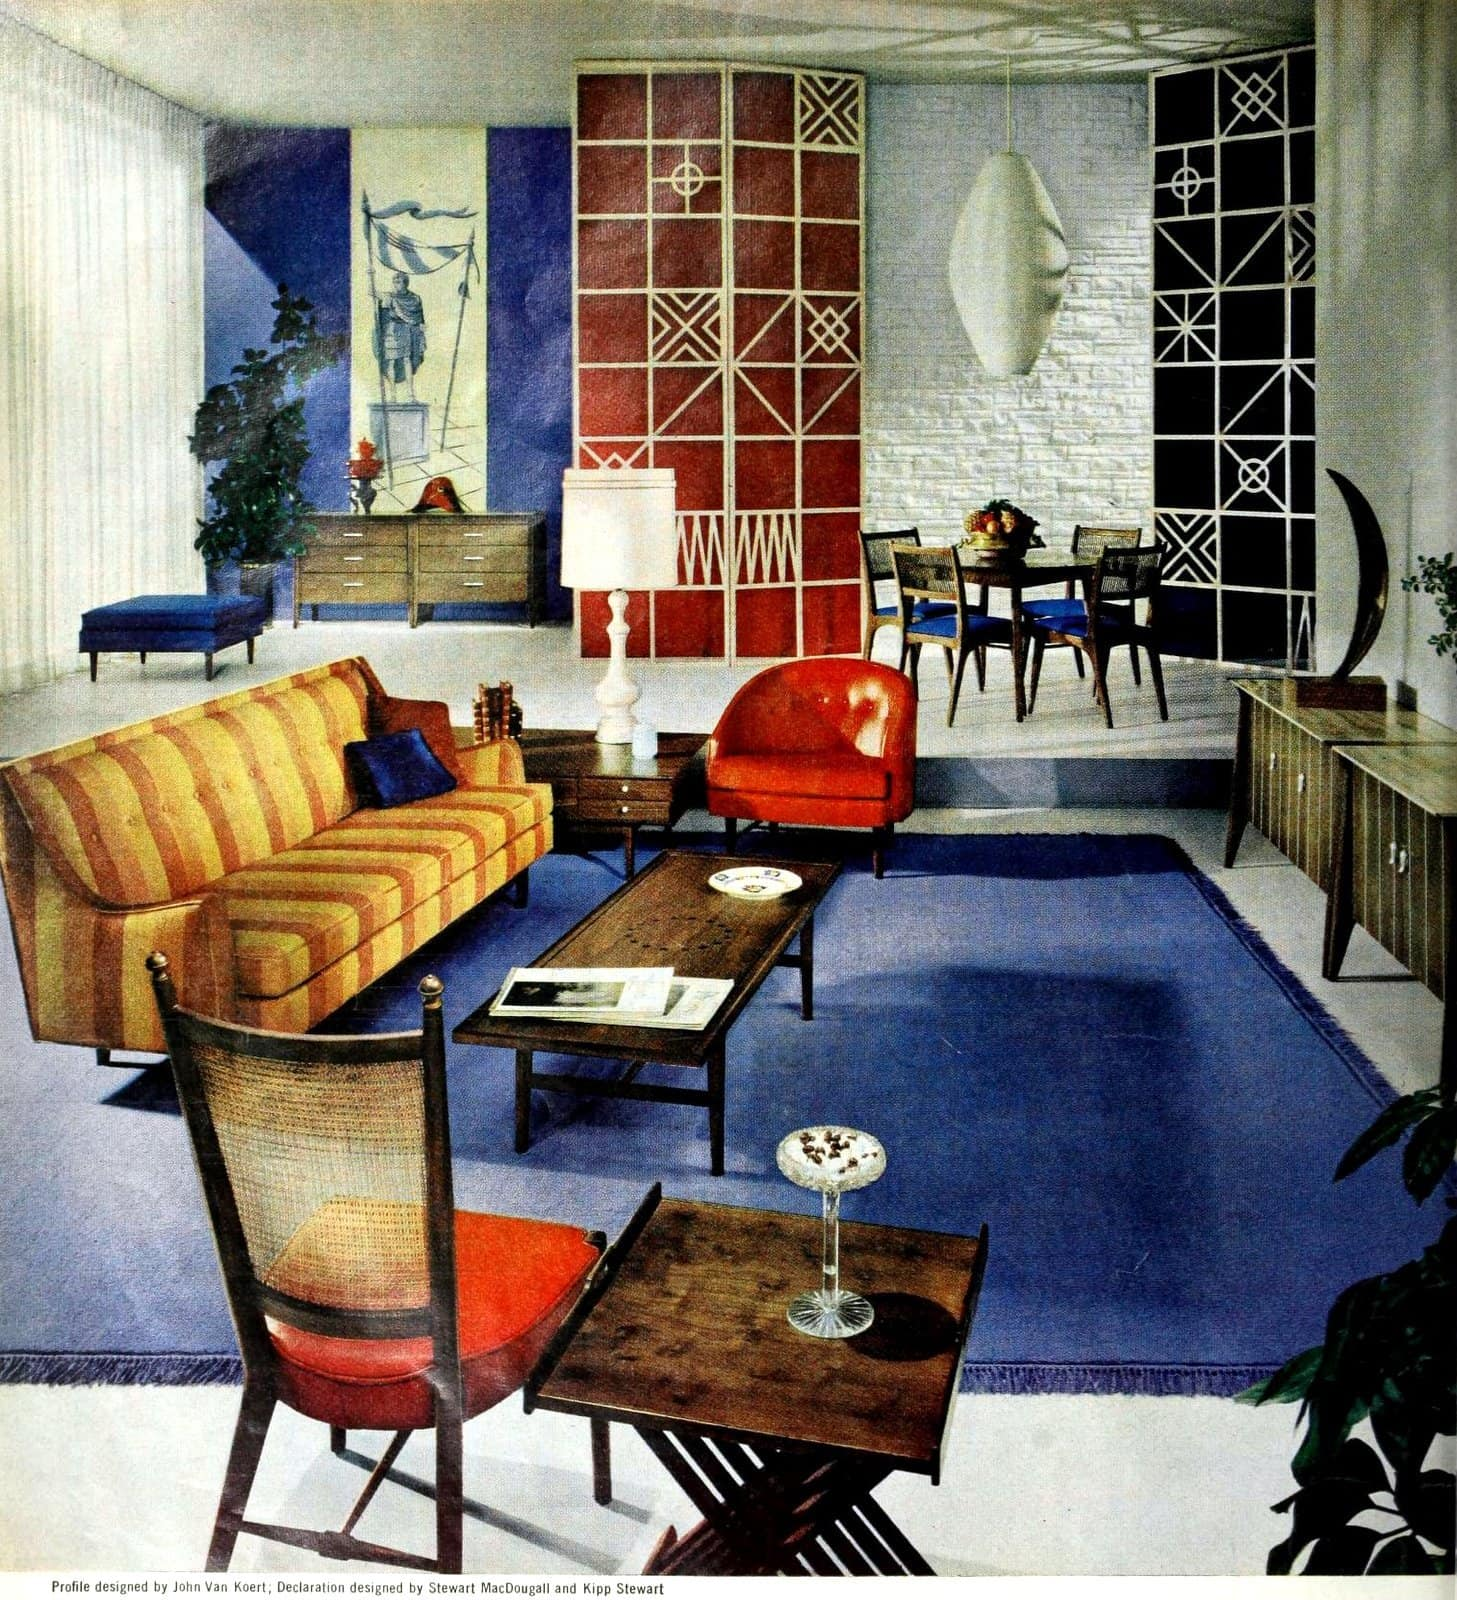 Primary color home decor with midcentury modern flair